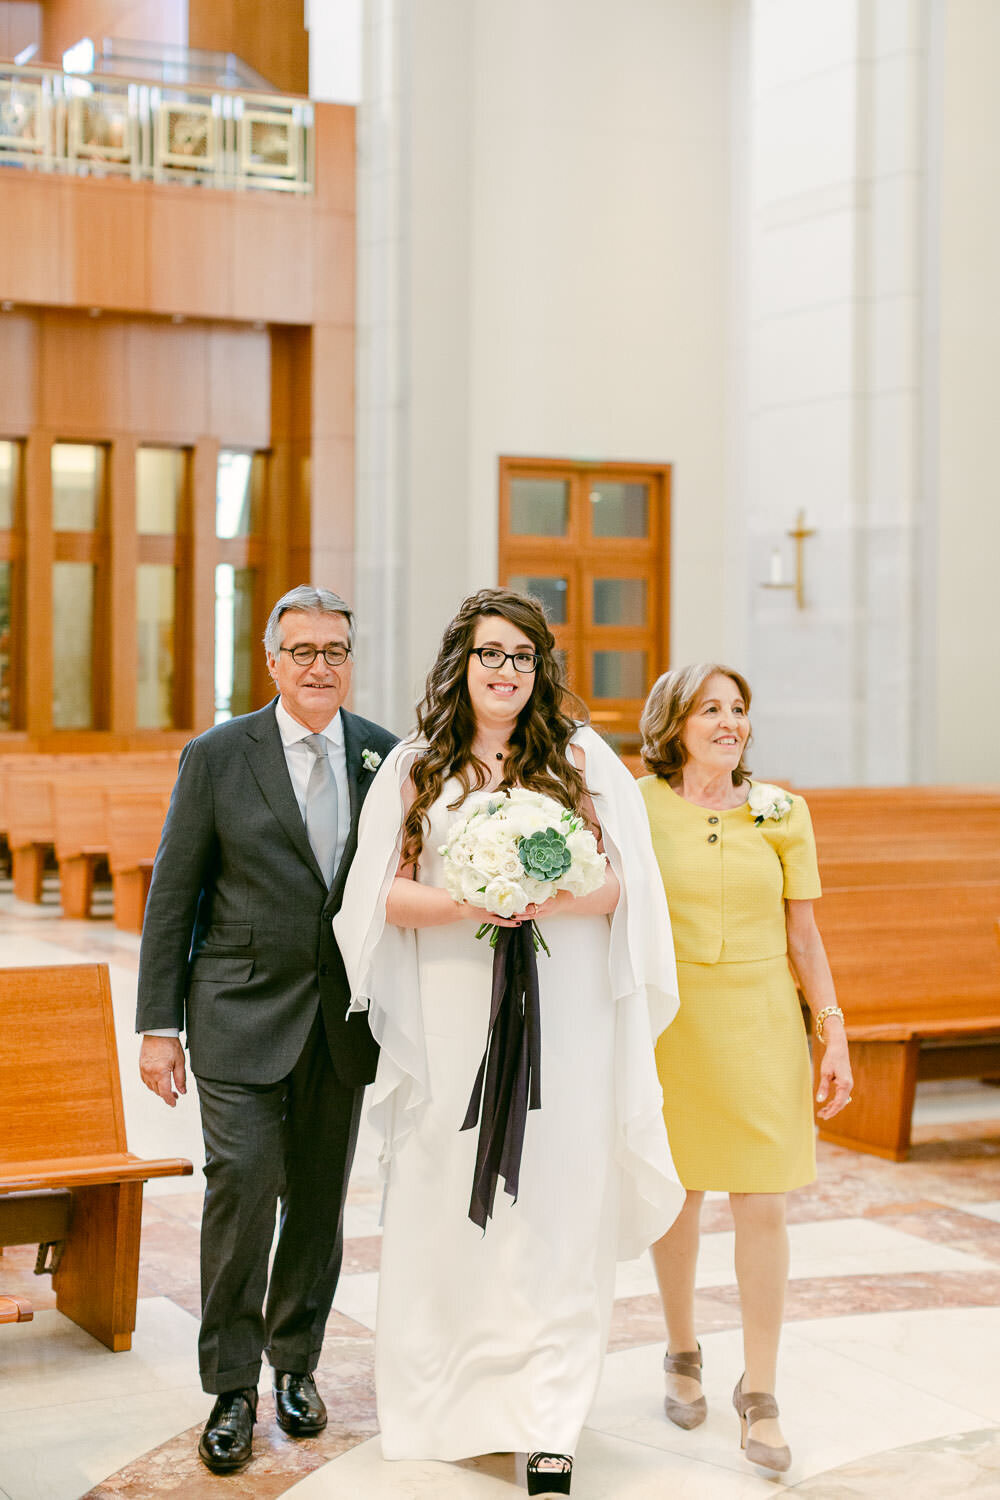 Co-Cathedral of the Sacred Heart Houston, Texas Wedding bride walking aisle